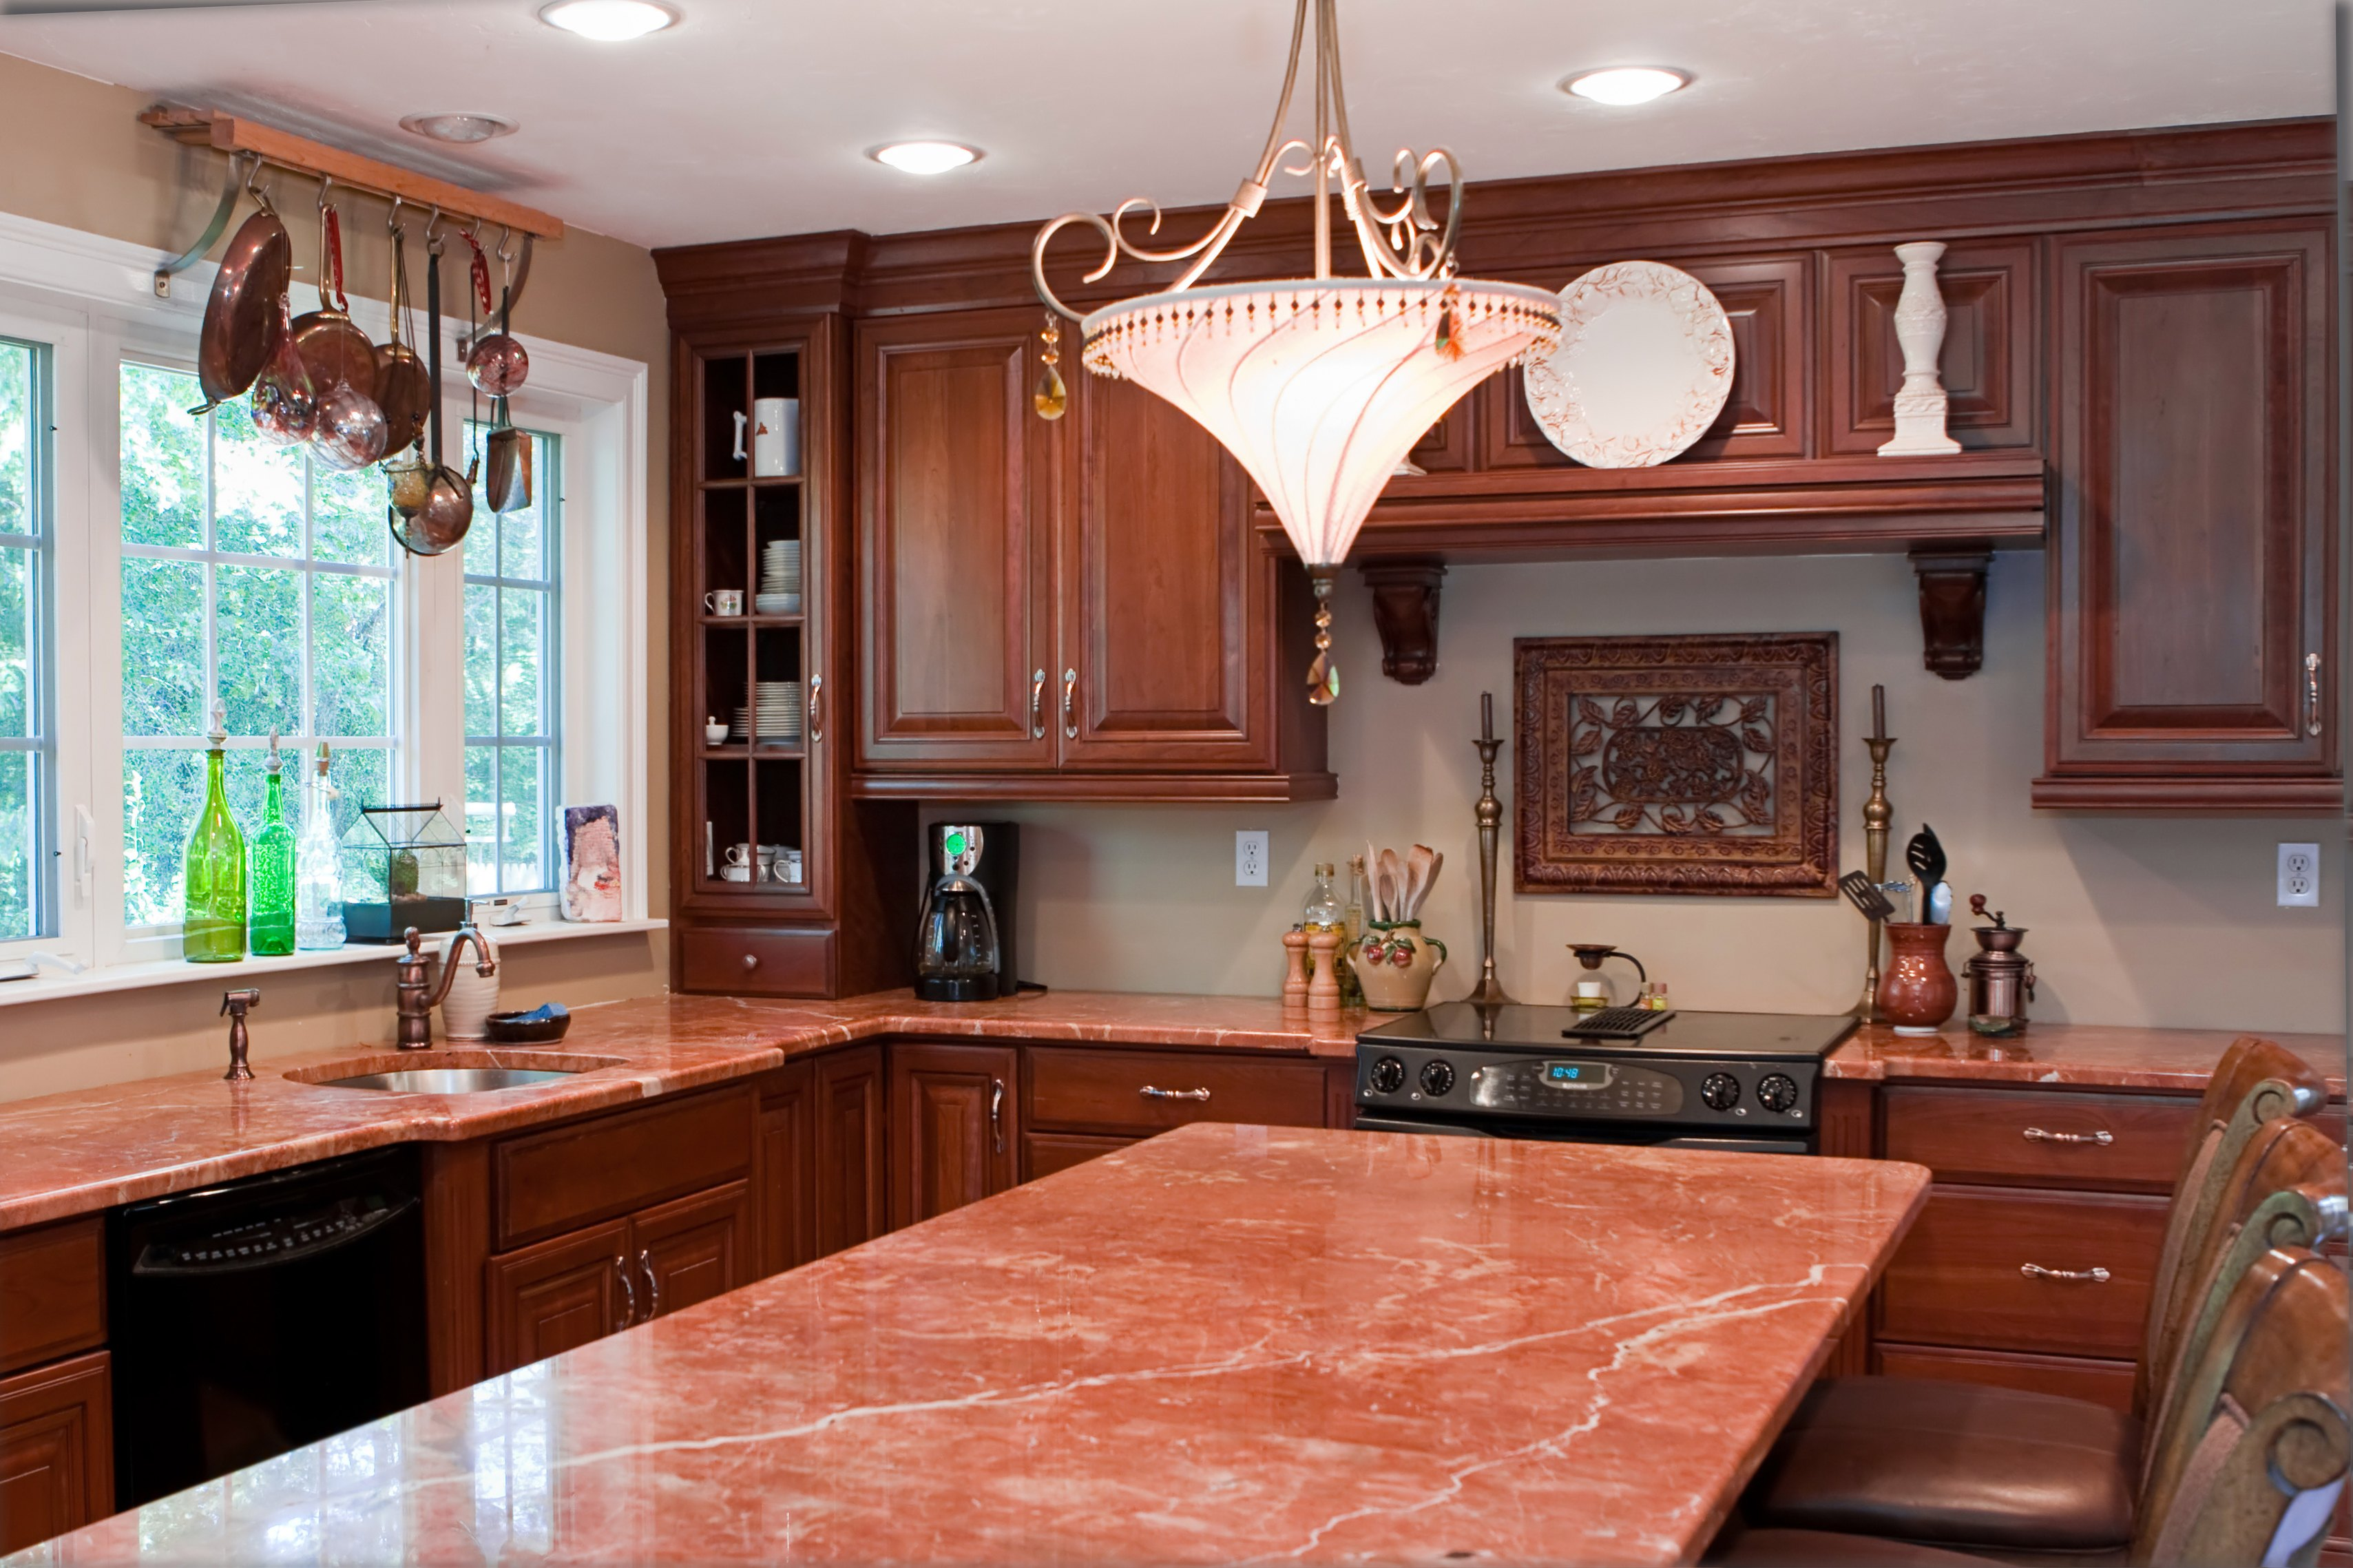 The Best Color Granite With Cherry Cabinets and Black ... on What Color Cabinets Go Best With Black Granite Countertops  id=50671